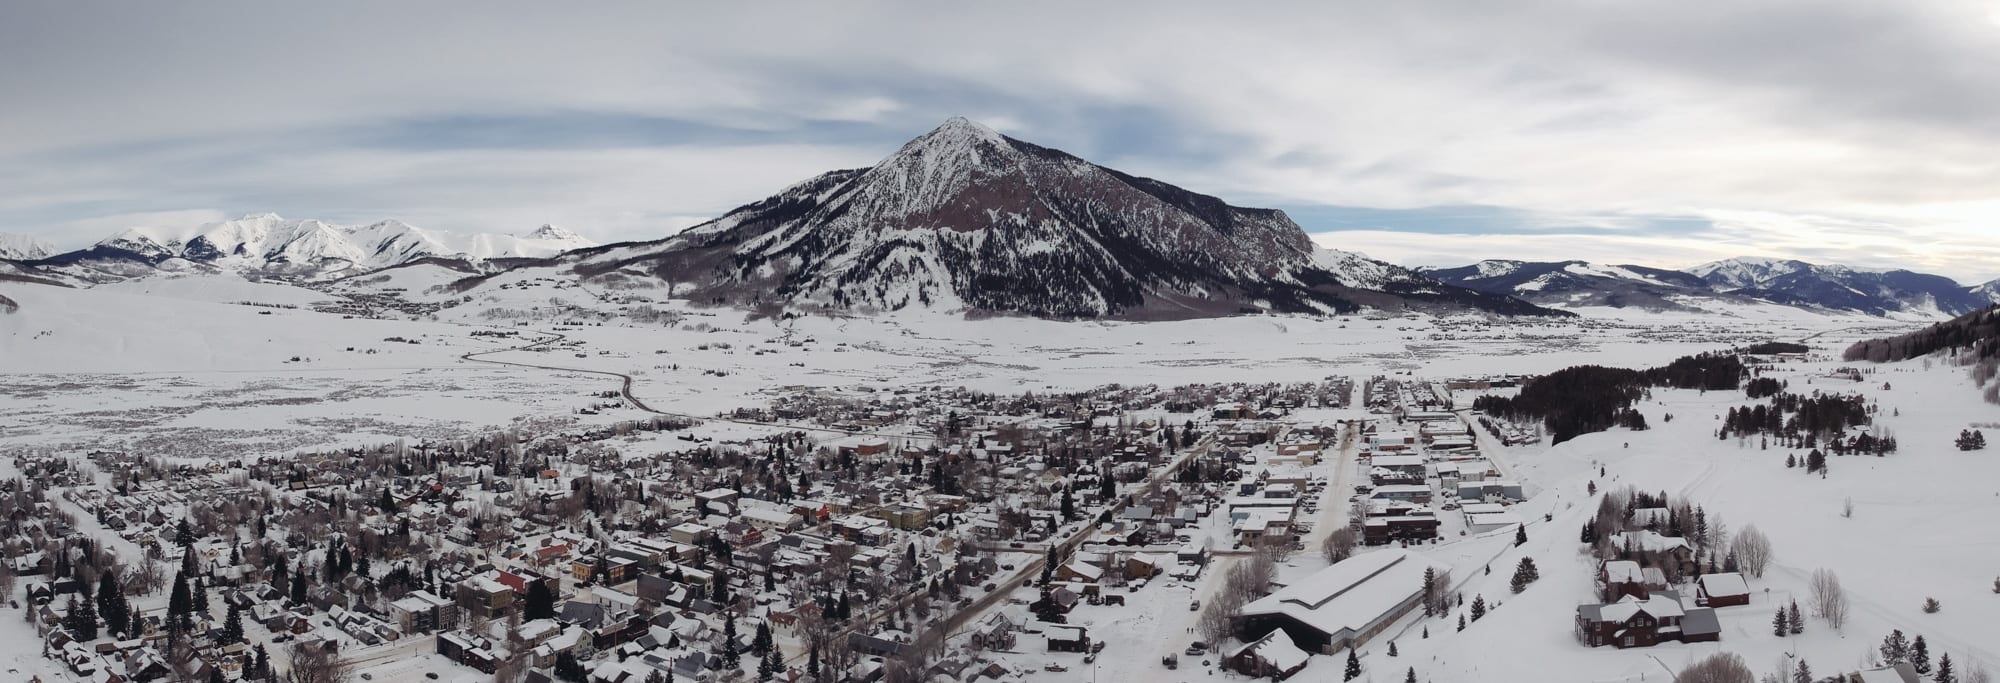 Downtown Crested Butte and Mount Crested Butte Panorama